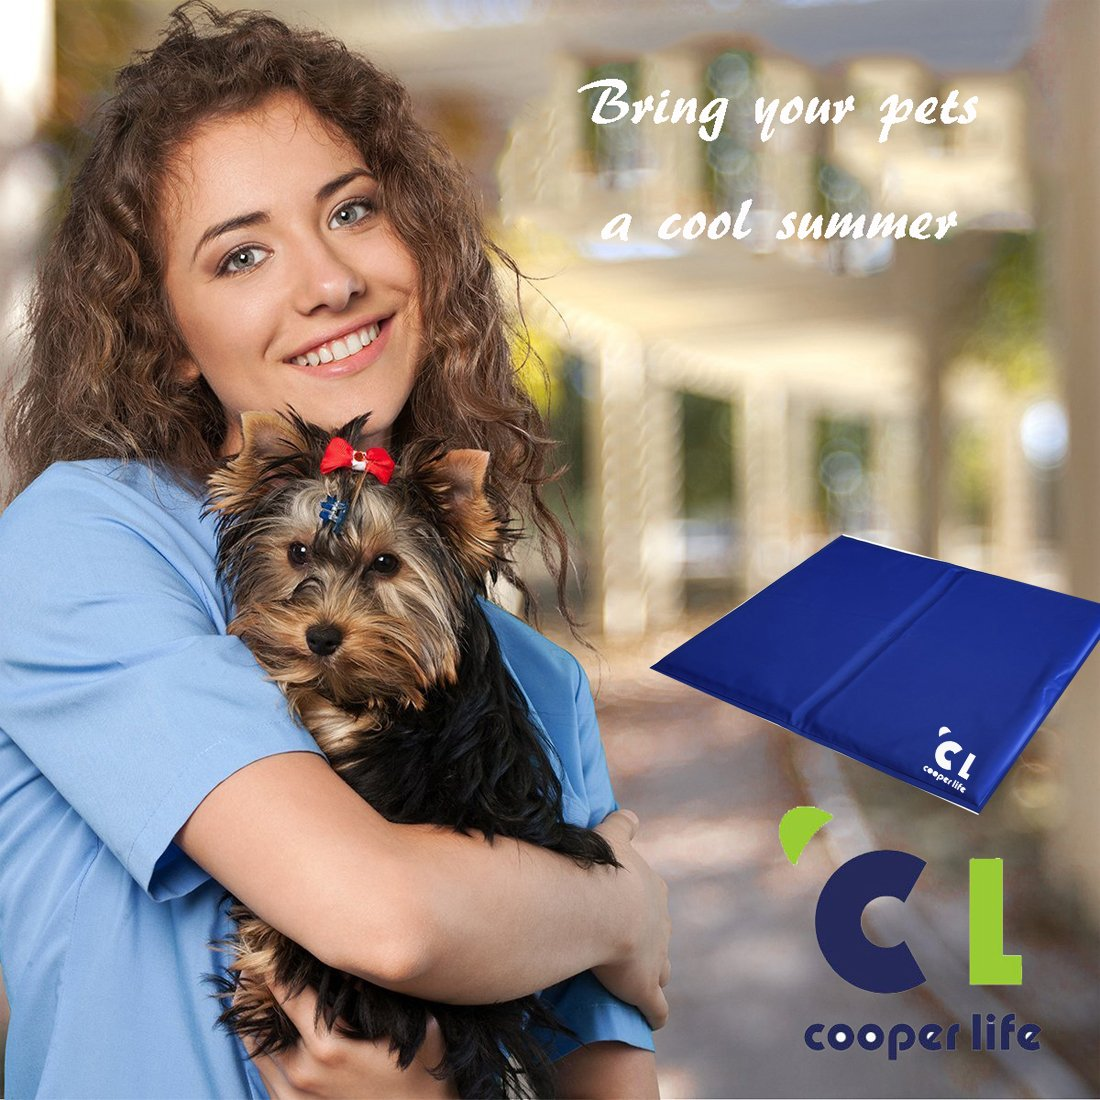 Cooper life Self Cooling Gel Pet Mat,Summer Sleep Cooling Mat/Pad with Easy to Clean,Non-Toxic——Prevent Overheating and Dehydration for Dogs,Cats&Pets. Perfect for Bed,Chair,Floor, Couch& Kennel (L) by Cooper life (Image #4)